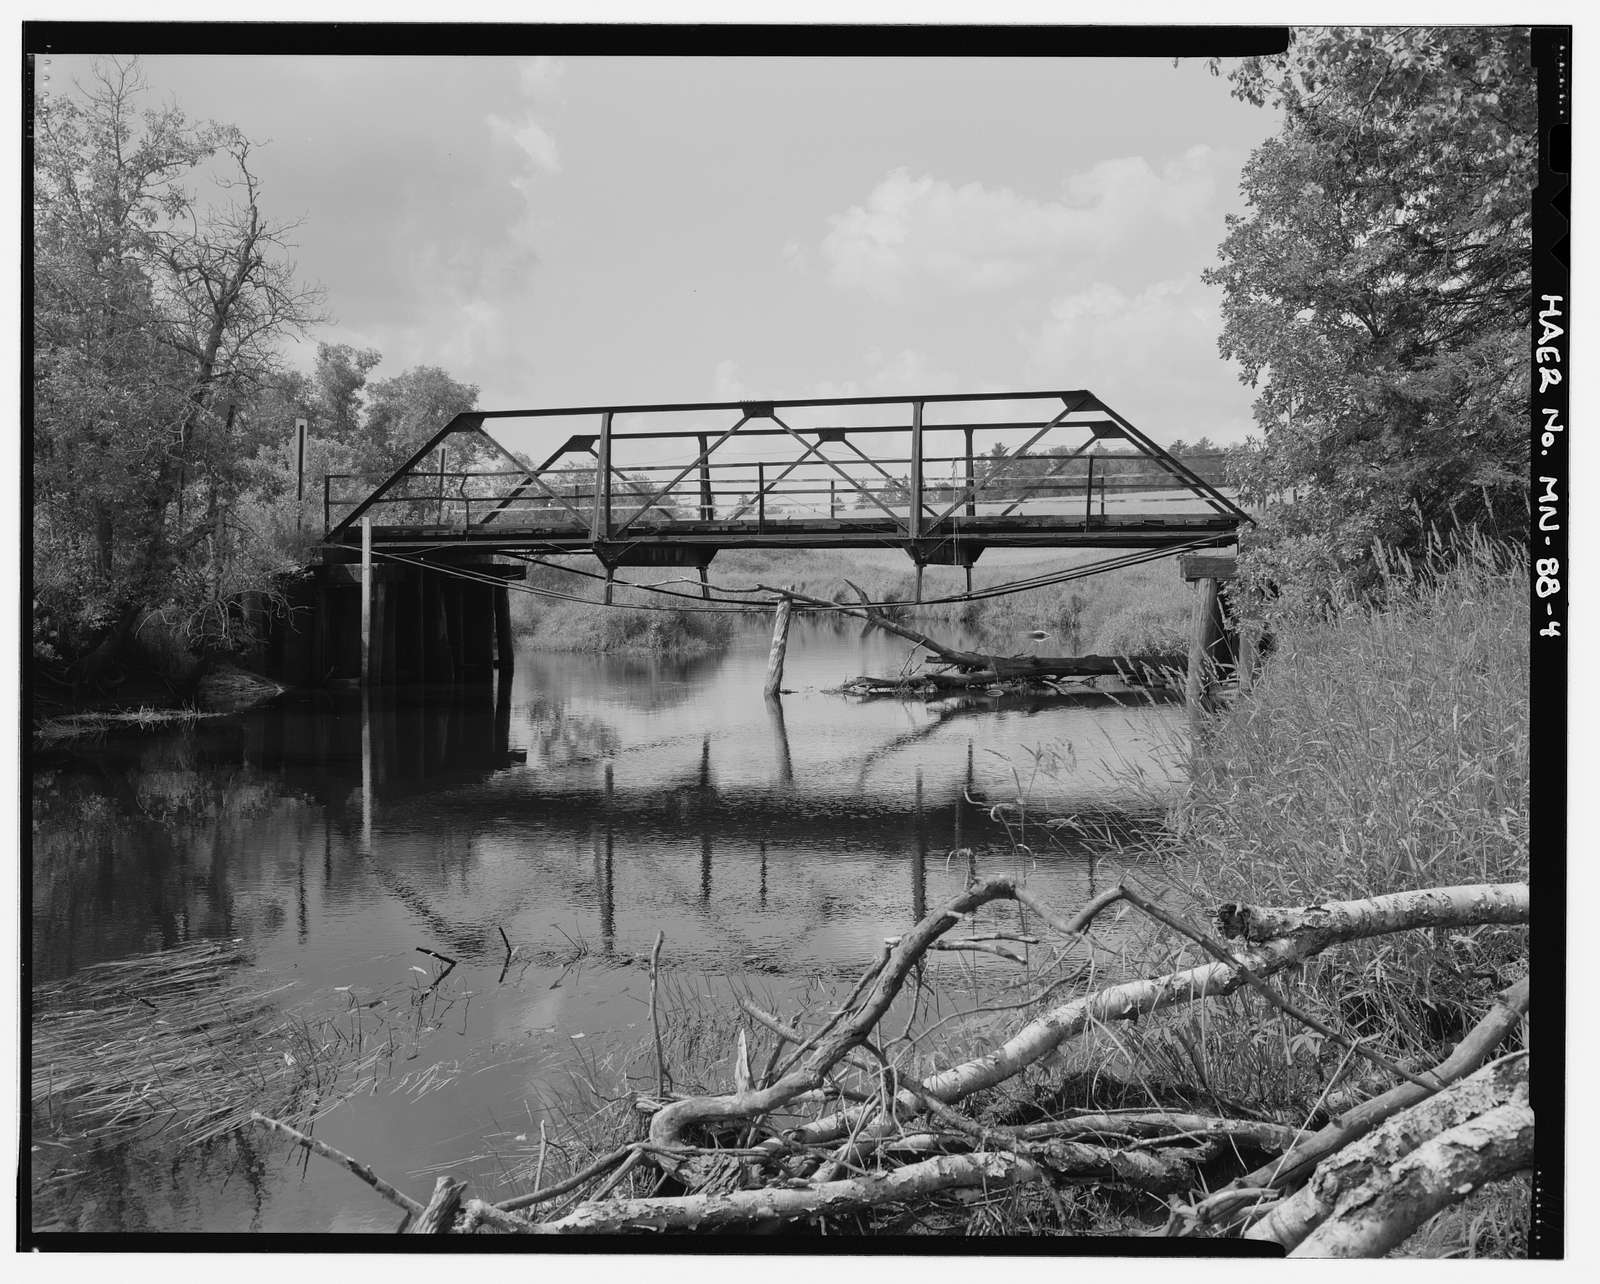 Bridge No. 92101, Spanning Pike River at County Highway 373, Embarrass, St. Louis County, MN